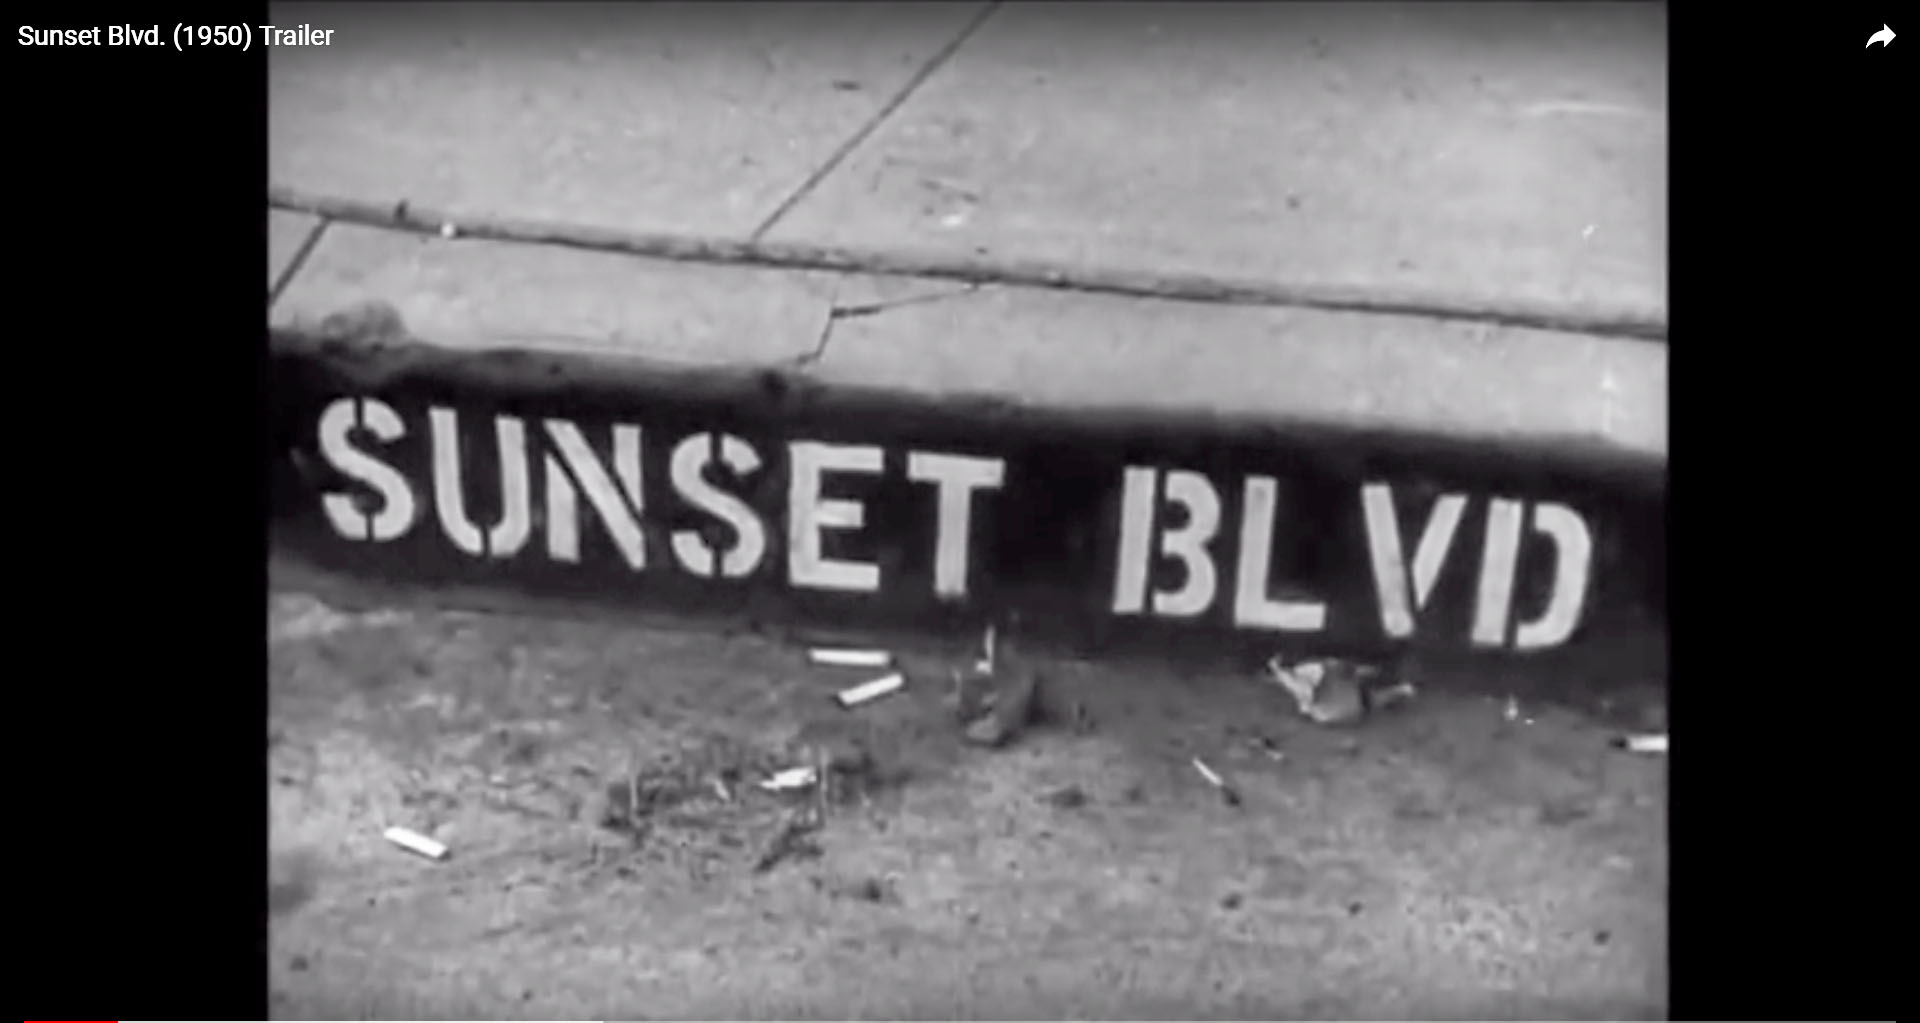 Shortcut Youtube-Video 'Sunset Boulevard'